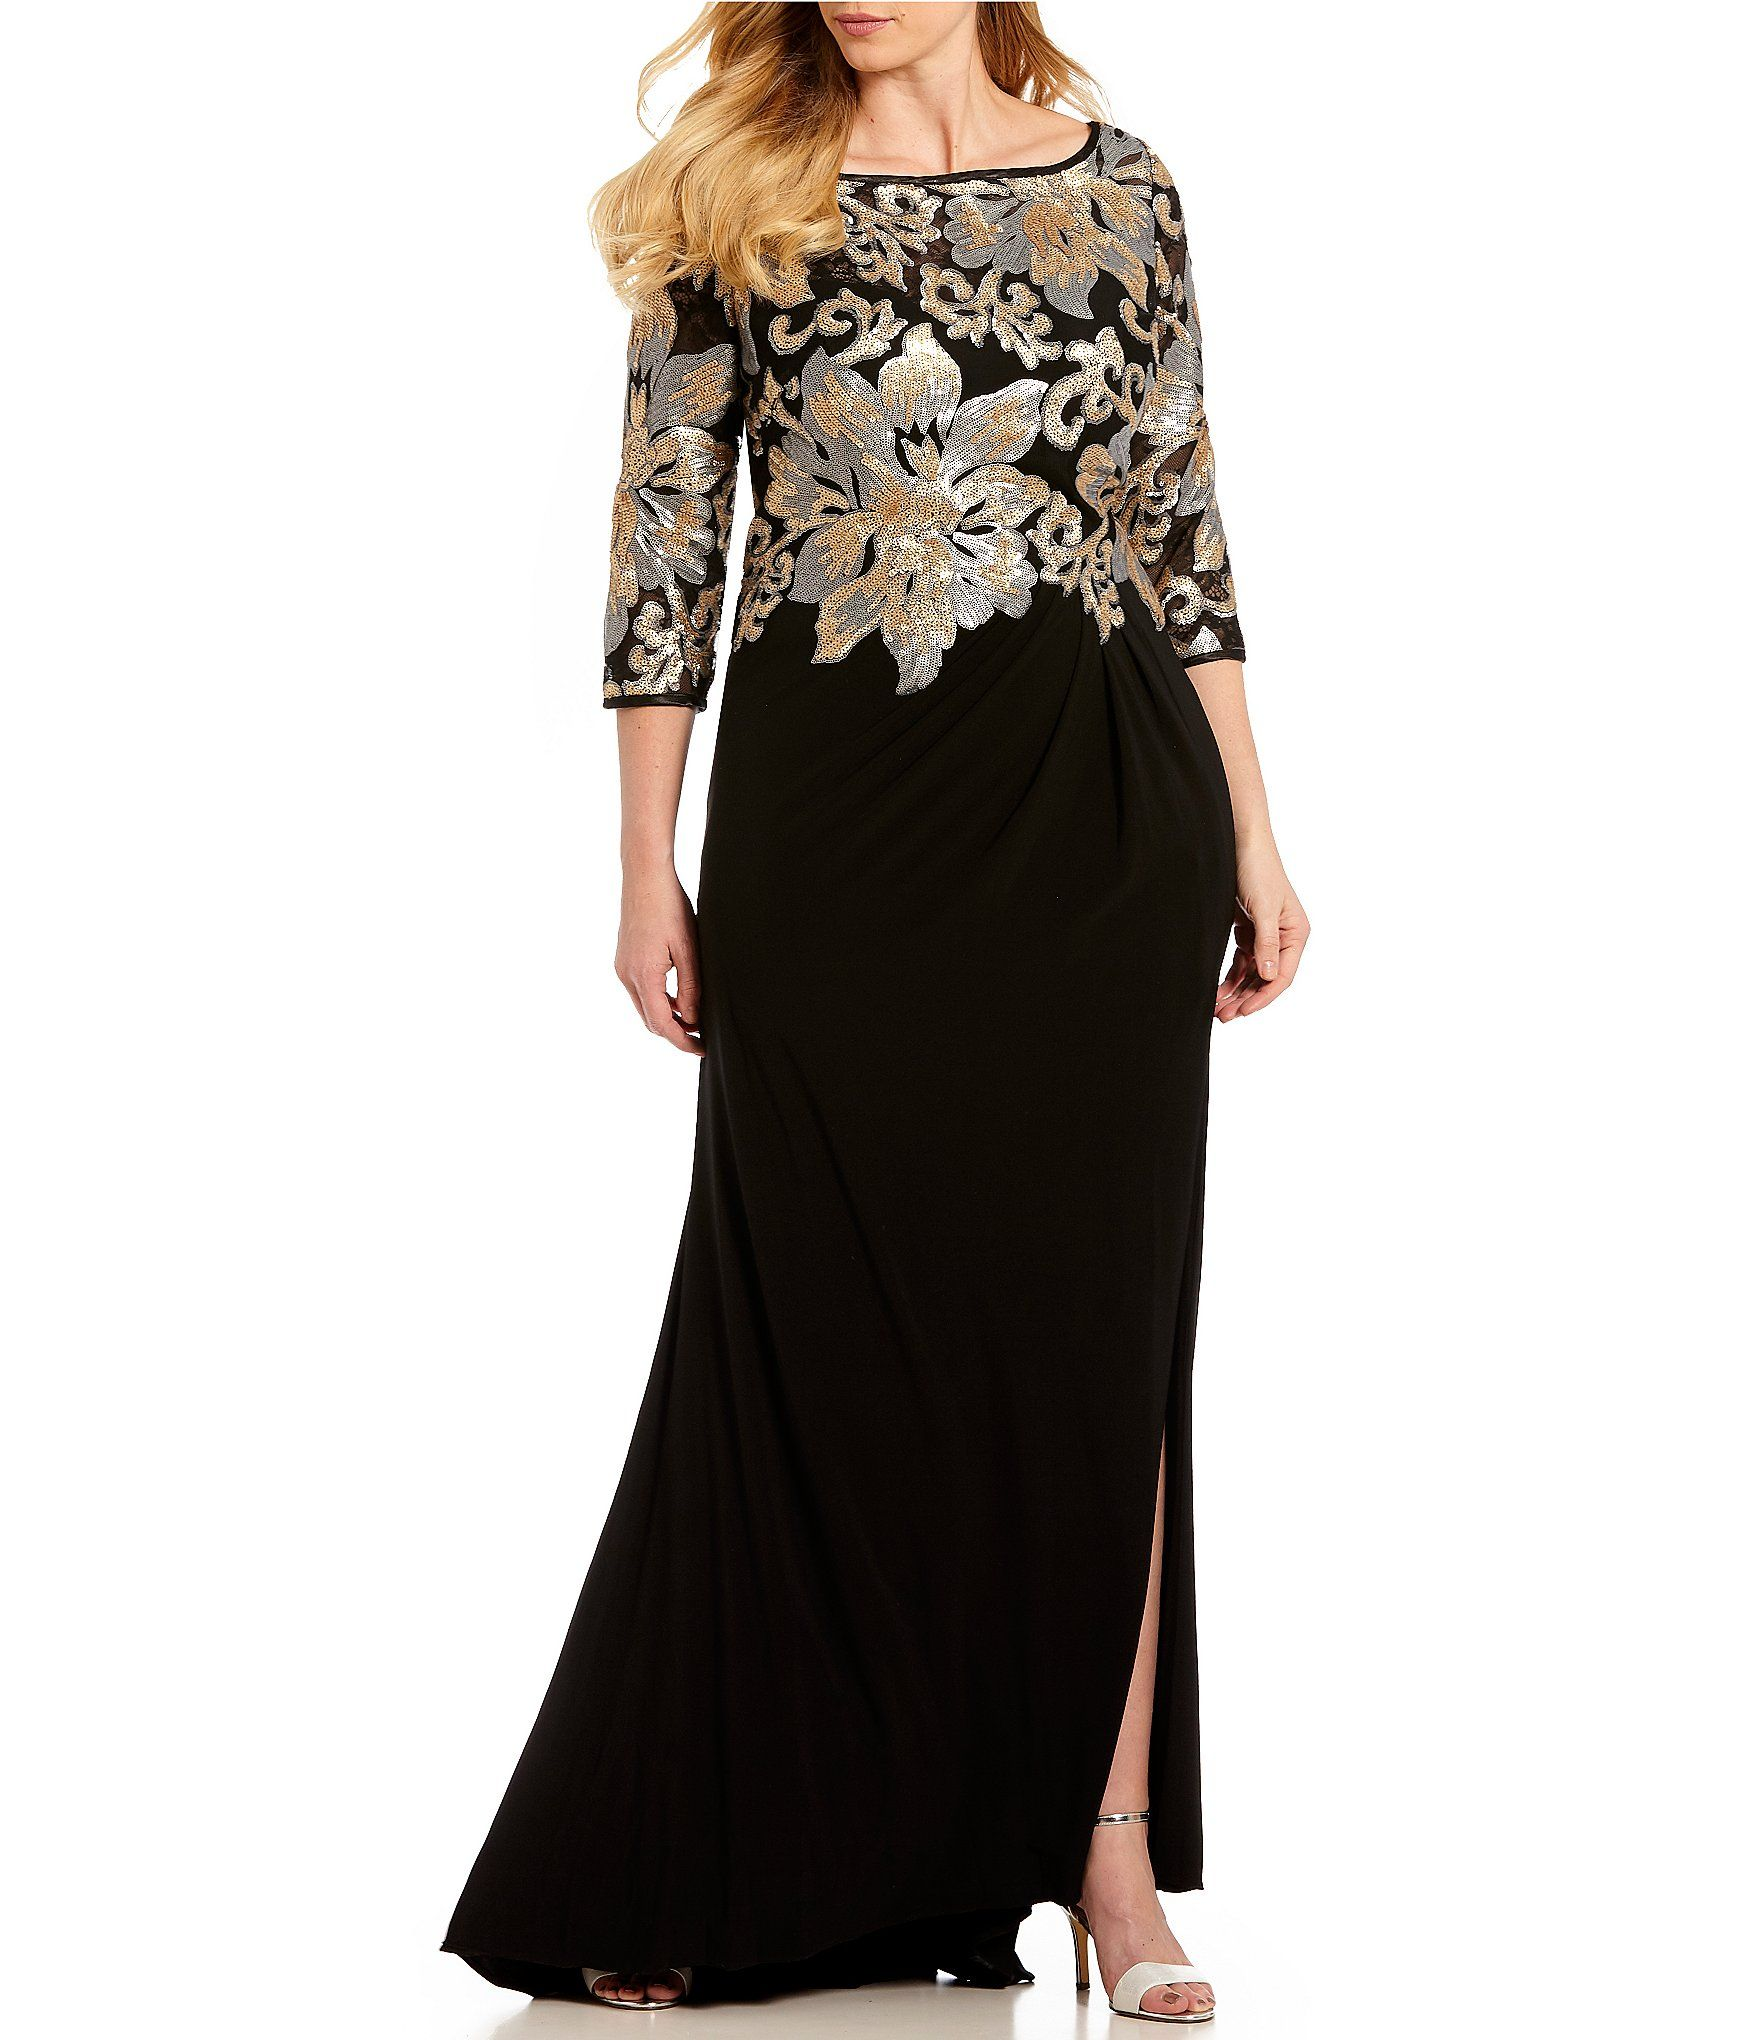 Shop for Terani Couture Plus Size 3/4 Sleeve Sequin Bodice ...